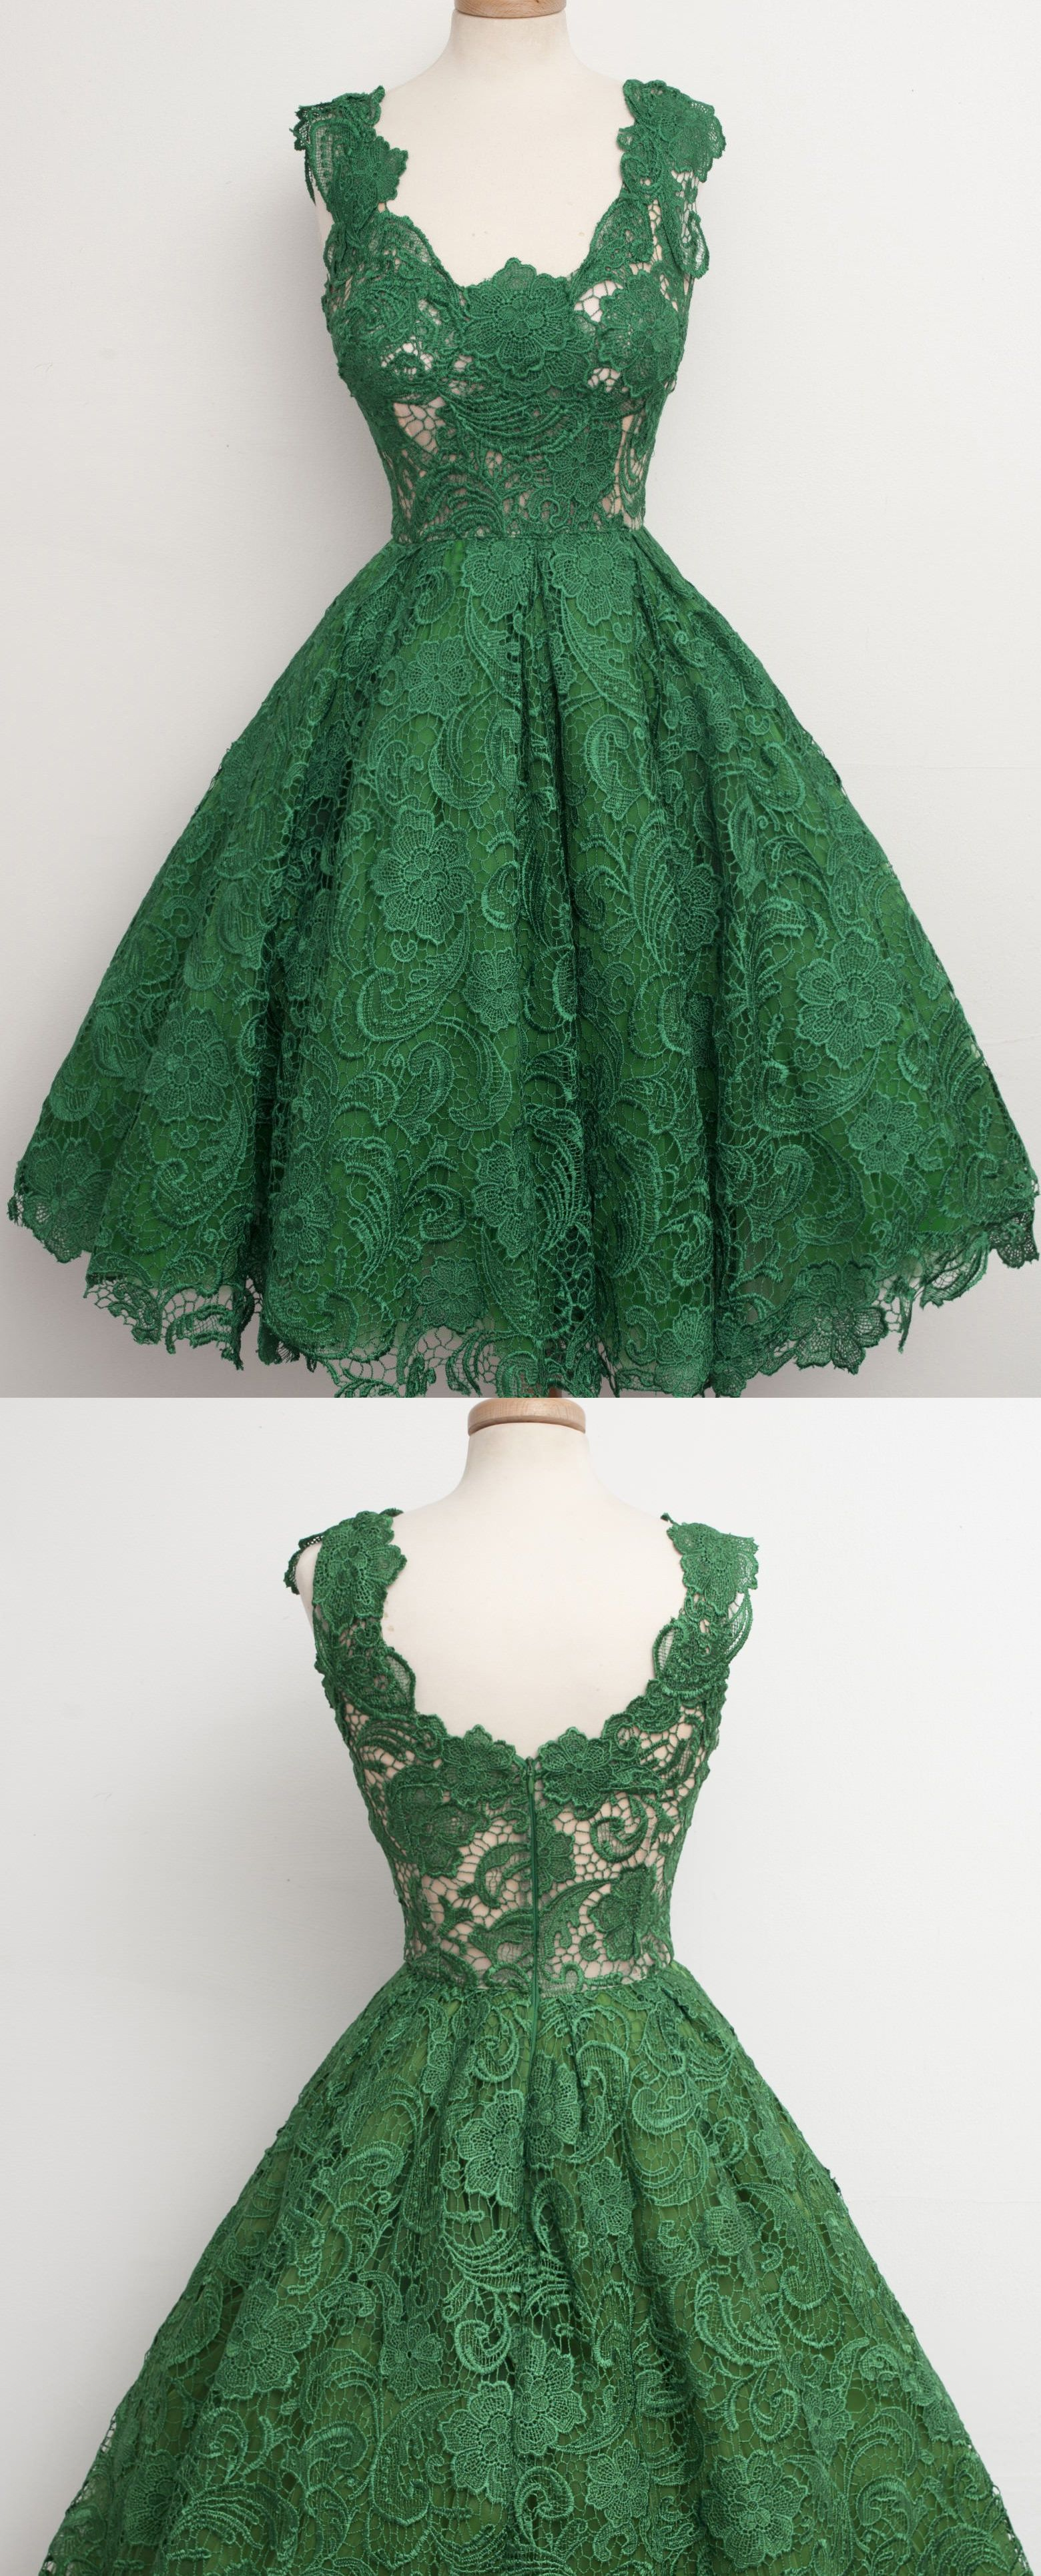 Hot sale green party prom dress splendid short party dresses with a